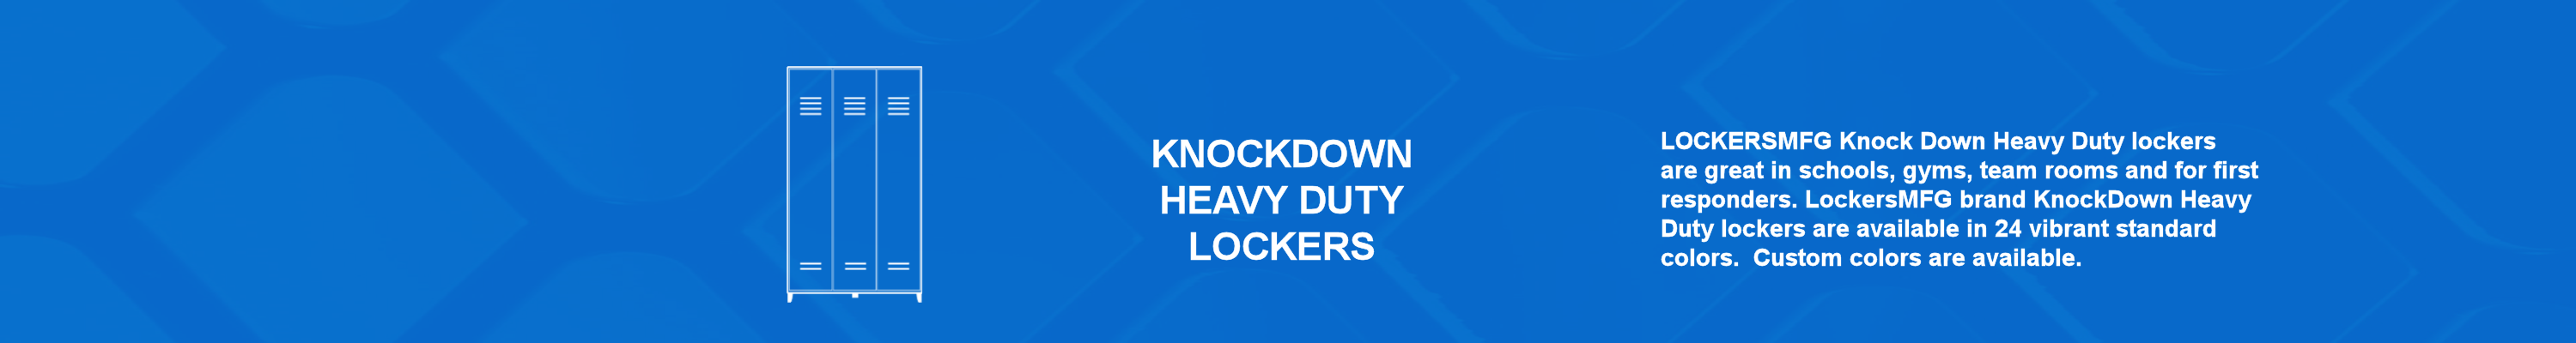 Knock Down HD DiamondBackground